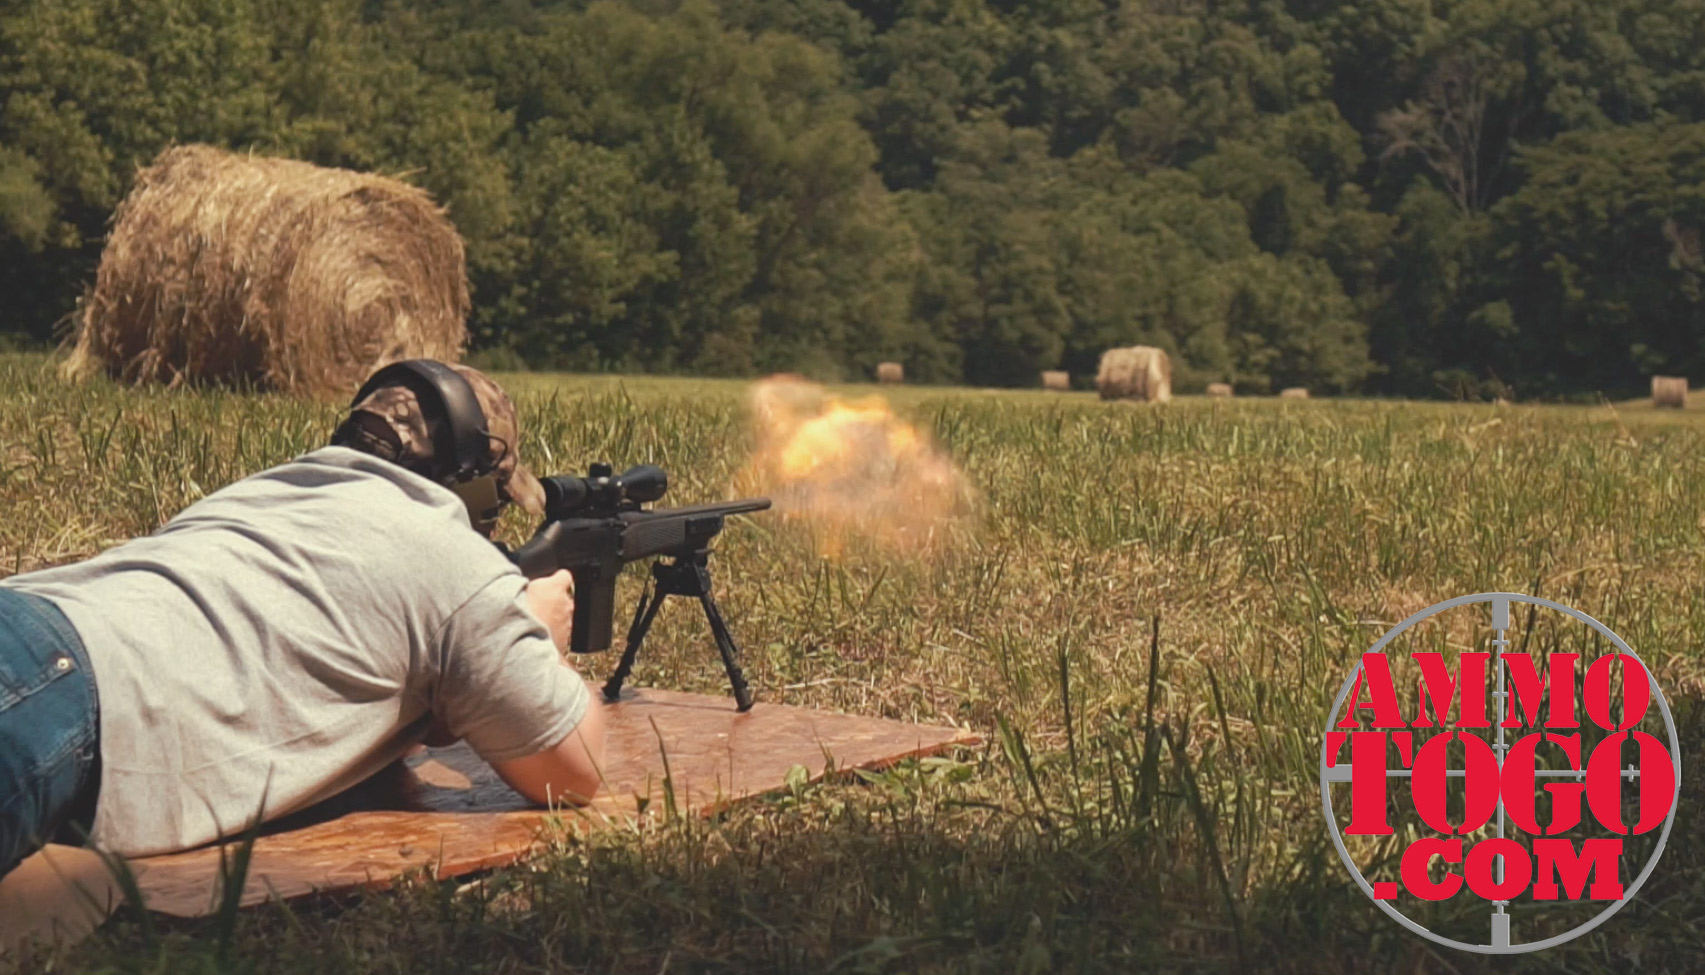 photo of man shooting 308 rifle in the prone position